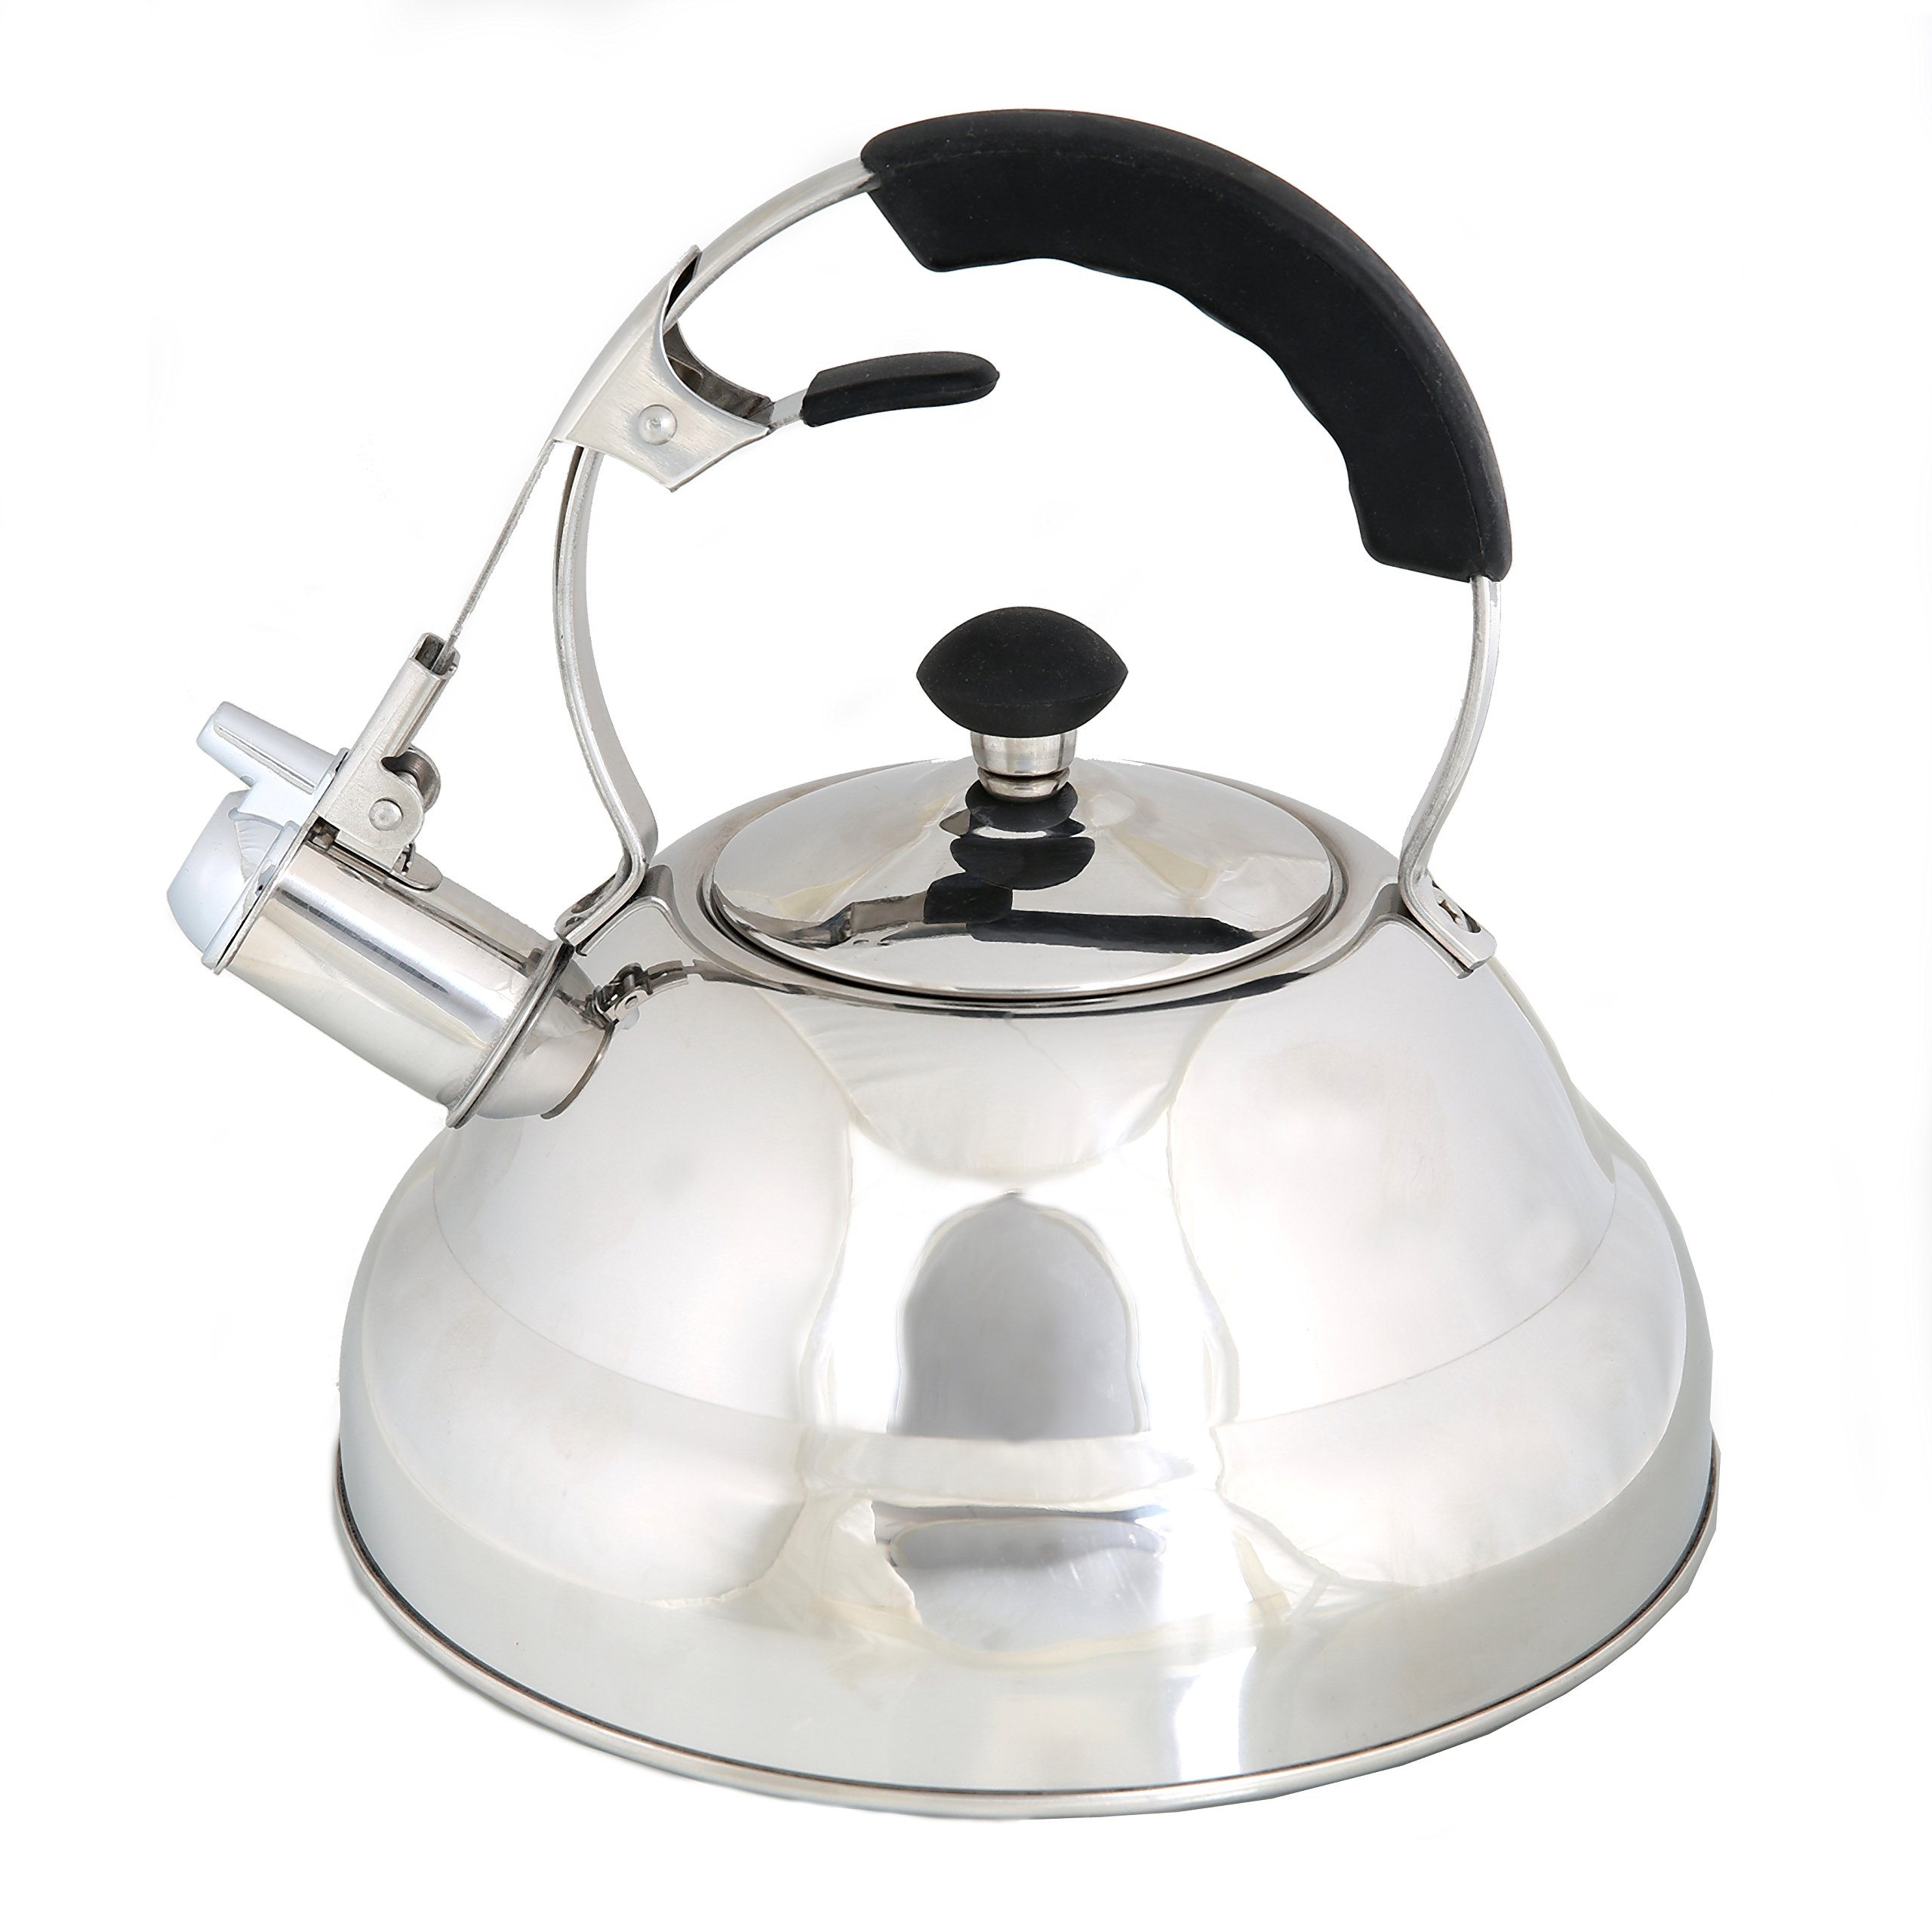 Whistling Stove Top Kettle Teapot with Layered Capsule Bottom, Silicone Handle, Stainless Steel Silver Mirror Finish Tea Pot, 2.75 Quart by Foodie Aid